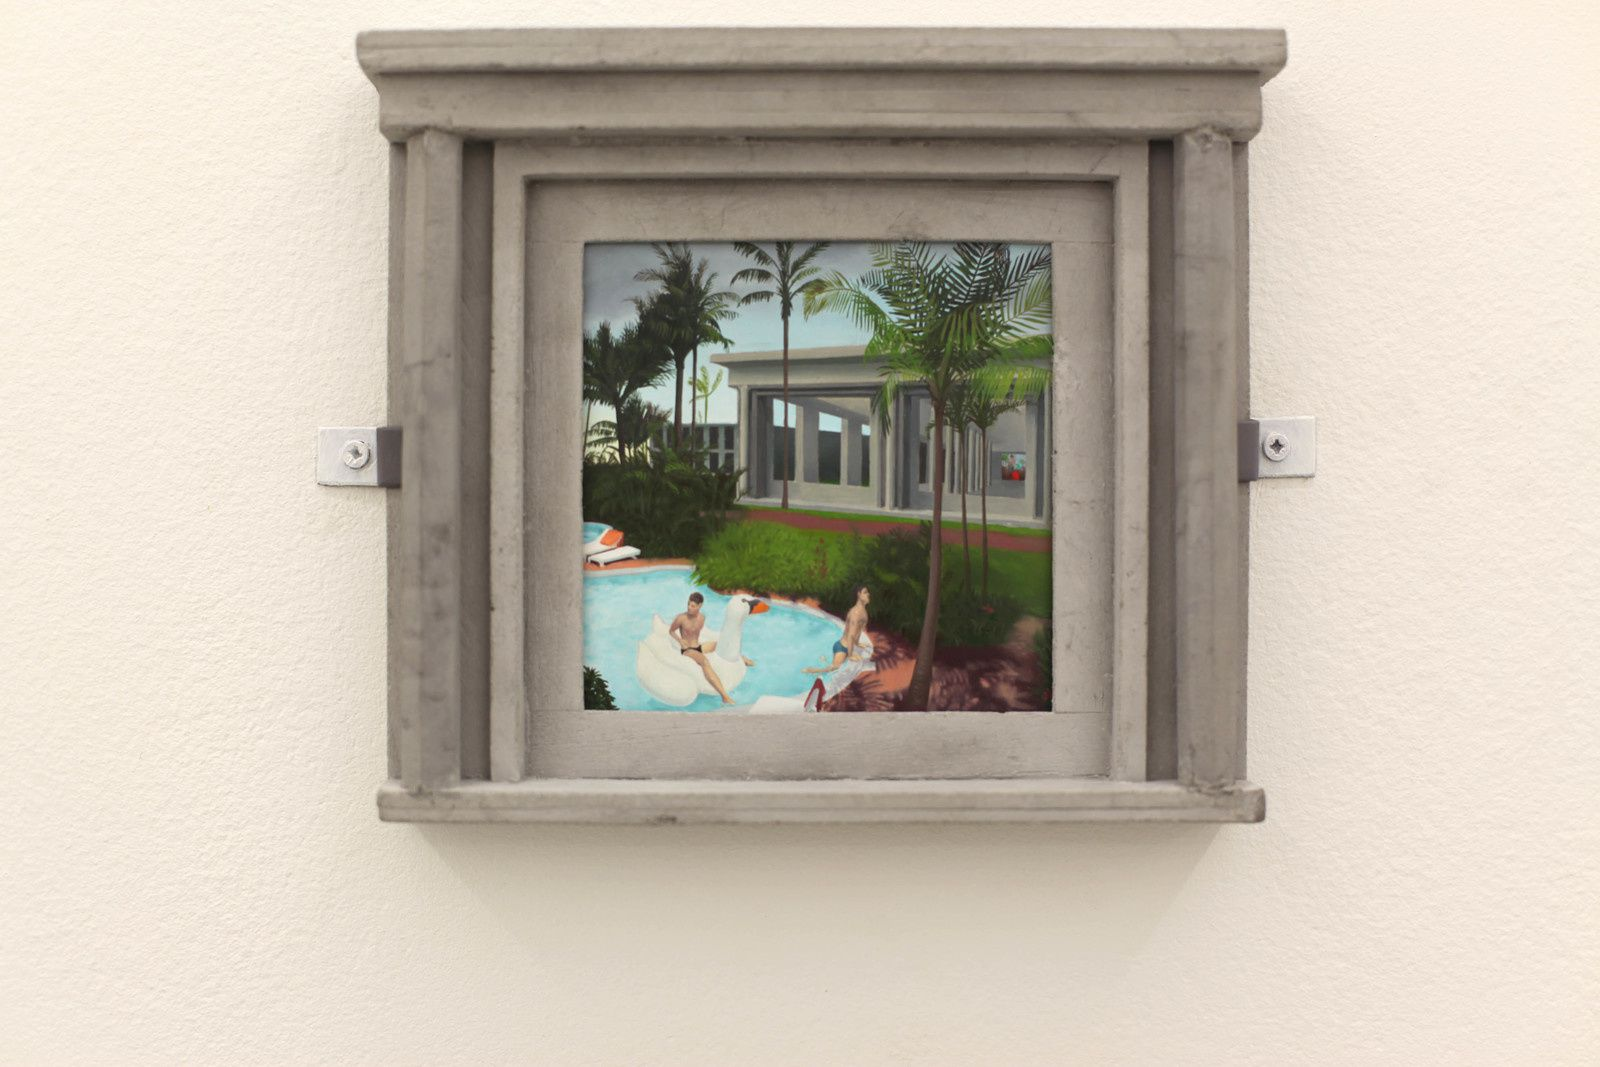 """Resort"", 2019 de Jean CLARACQ - Courtesy Galerie Praz-Delavallade PARIS © Photo Éric Simon"